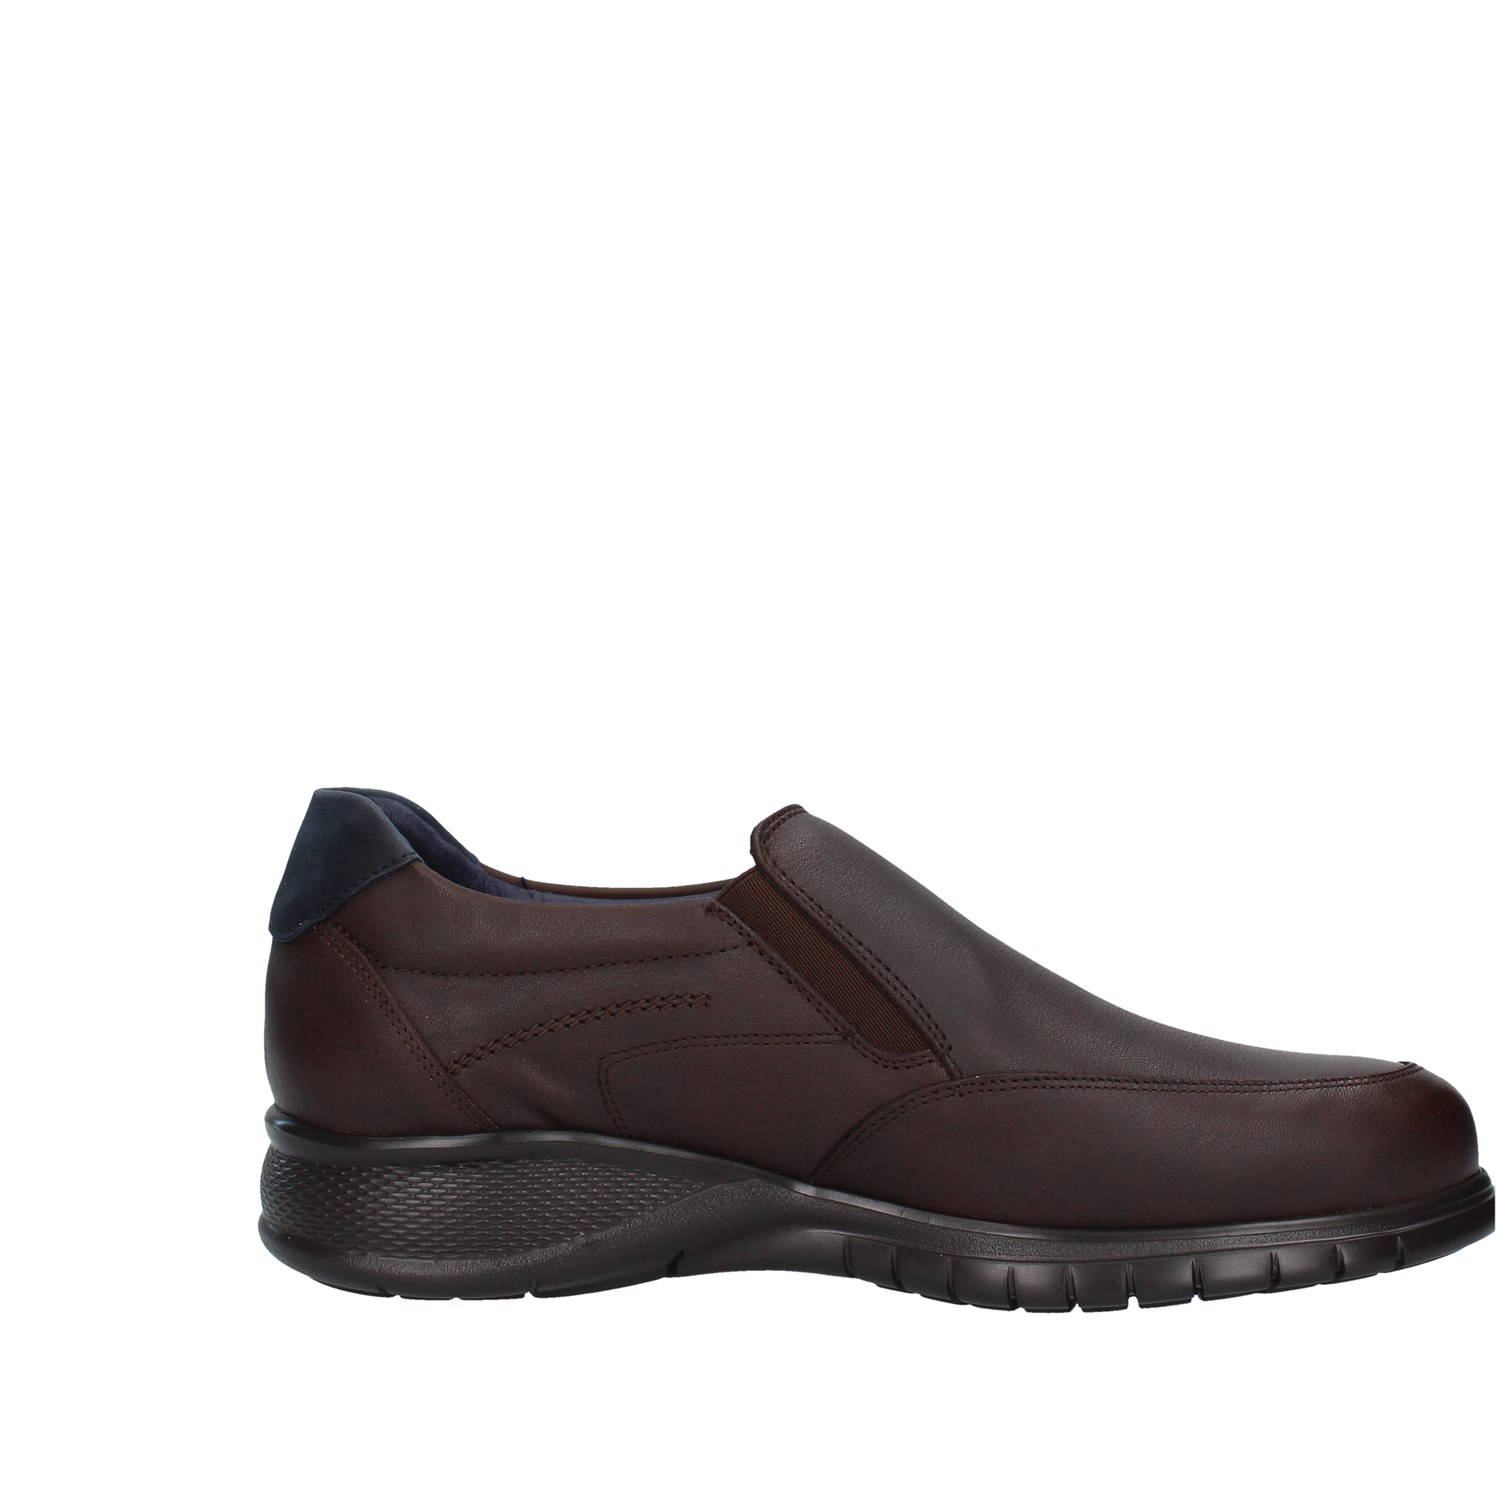 Callaghan Shoes Man Loafers BROWN 12708